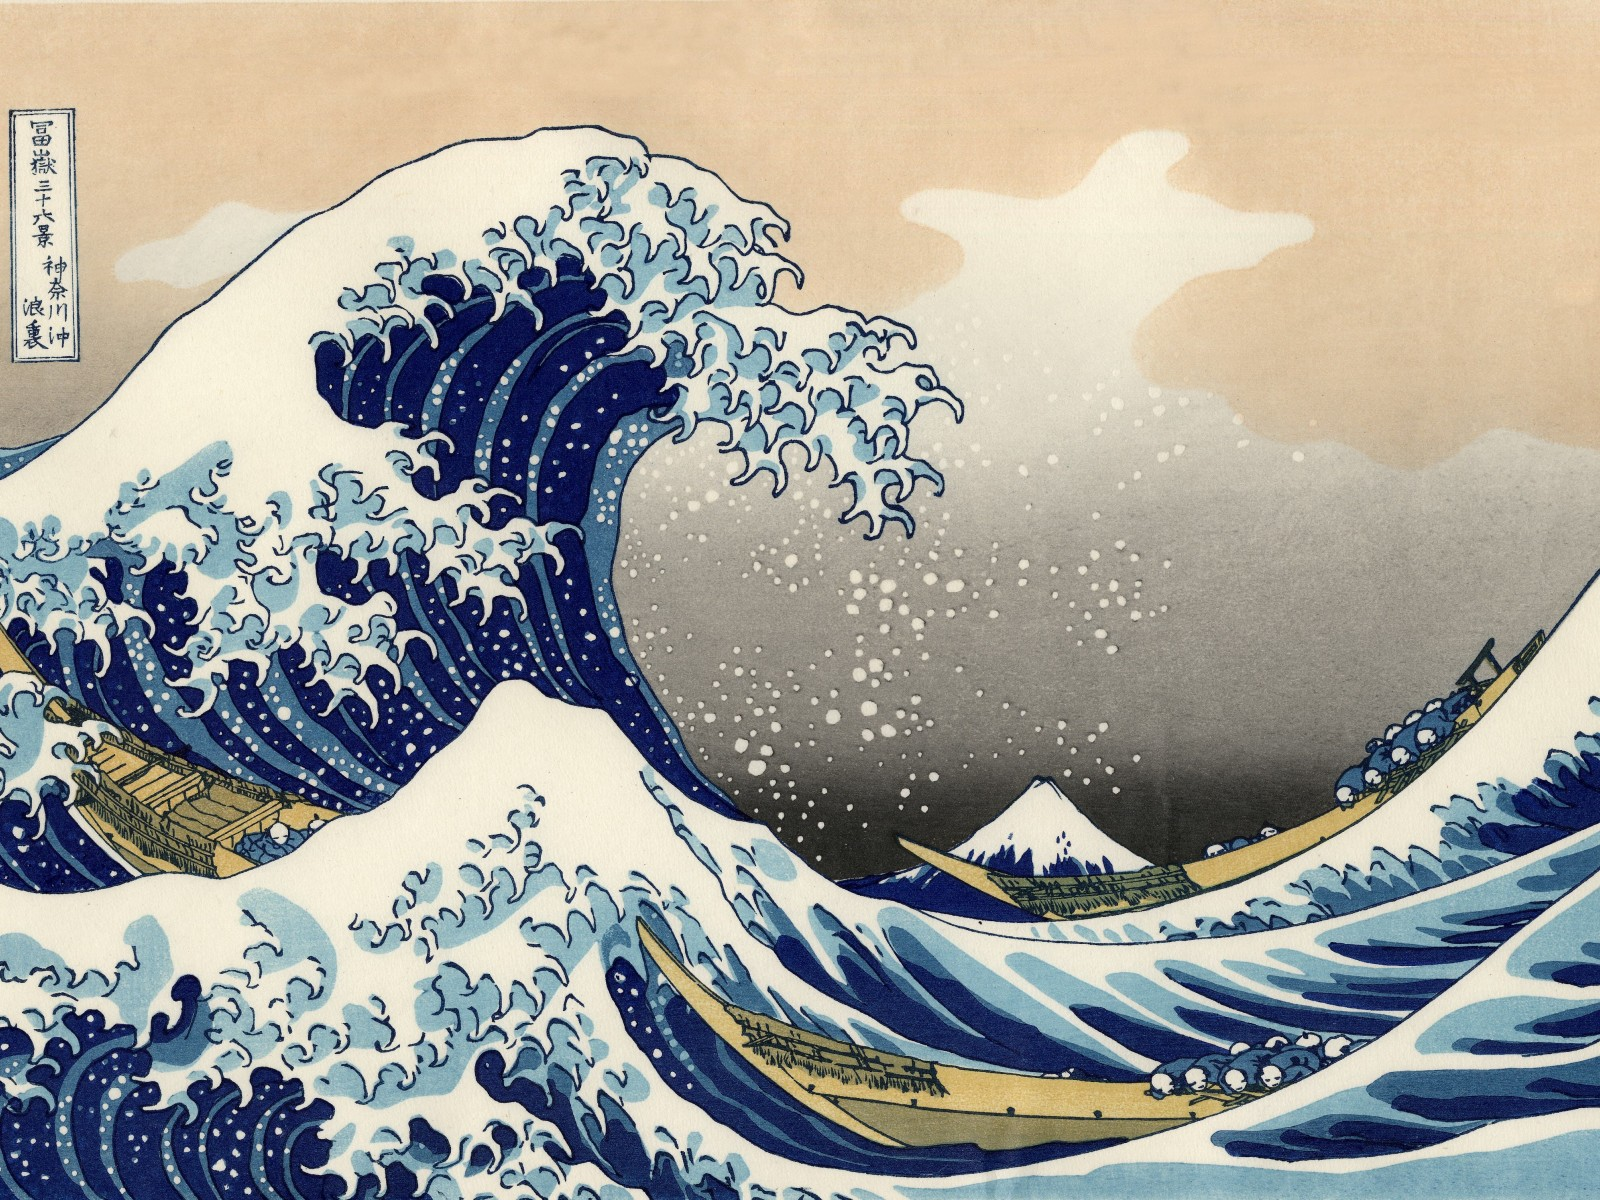 The-Great-Wave-off-Kanagawa-the-great-wave-off-kanagawa-1600x1200.jpg